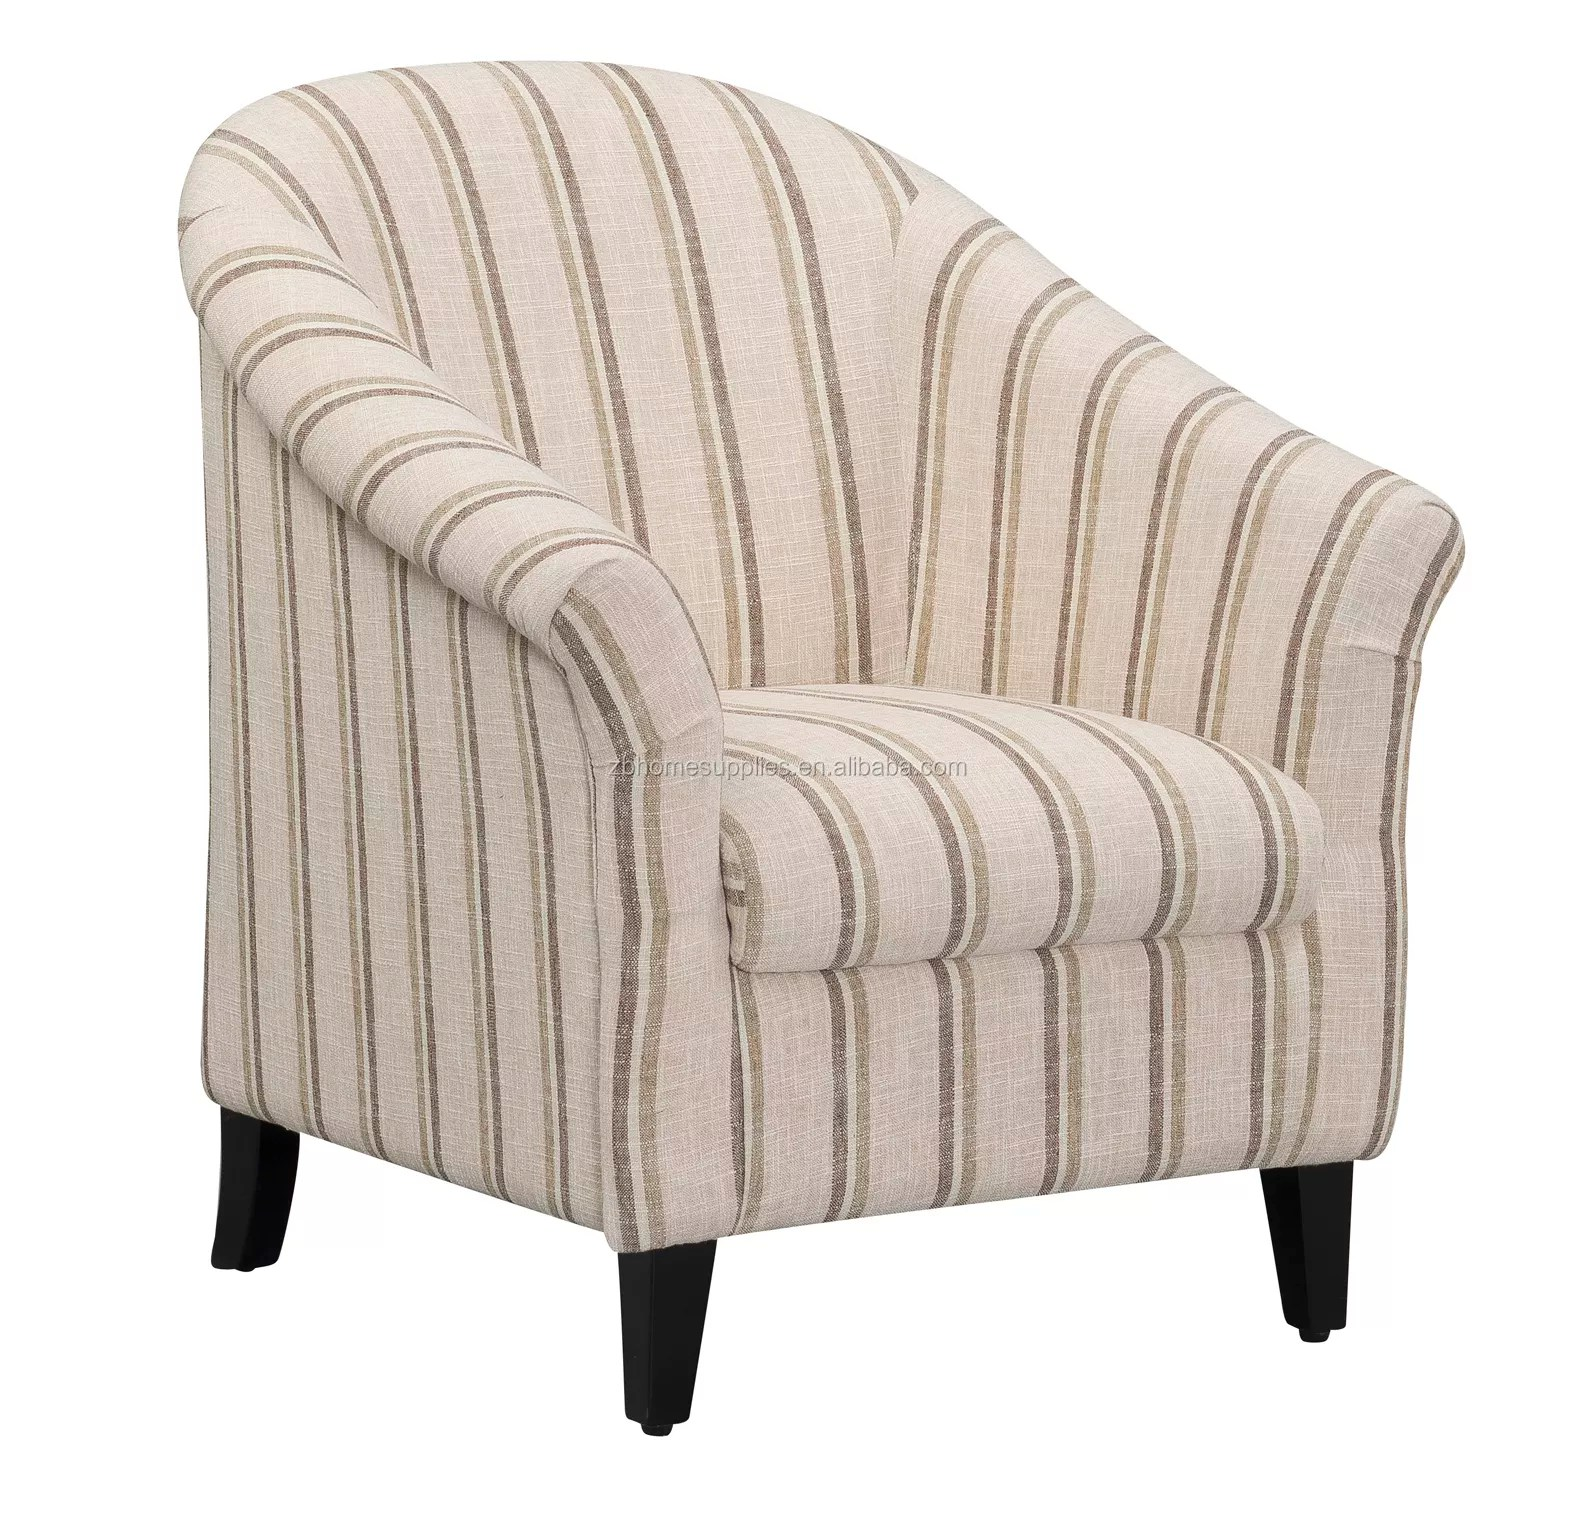 High Back Antique Sofa American Style Antique Luxury Style Furniture Wedding Banquet Salon Wood Wingback Sofa Chair High Back Wing Chairs Buy Accent Chair Arm Chair Tube